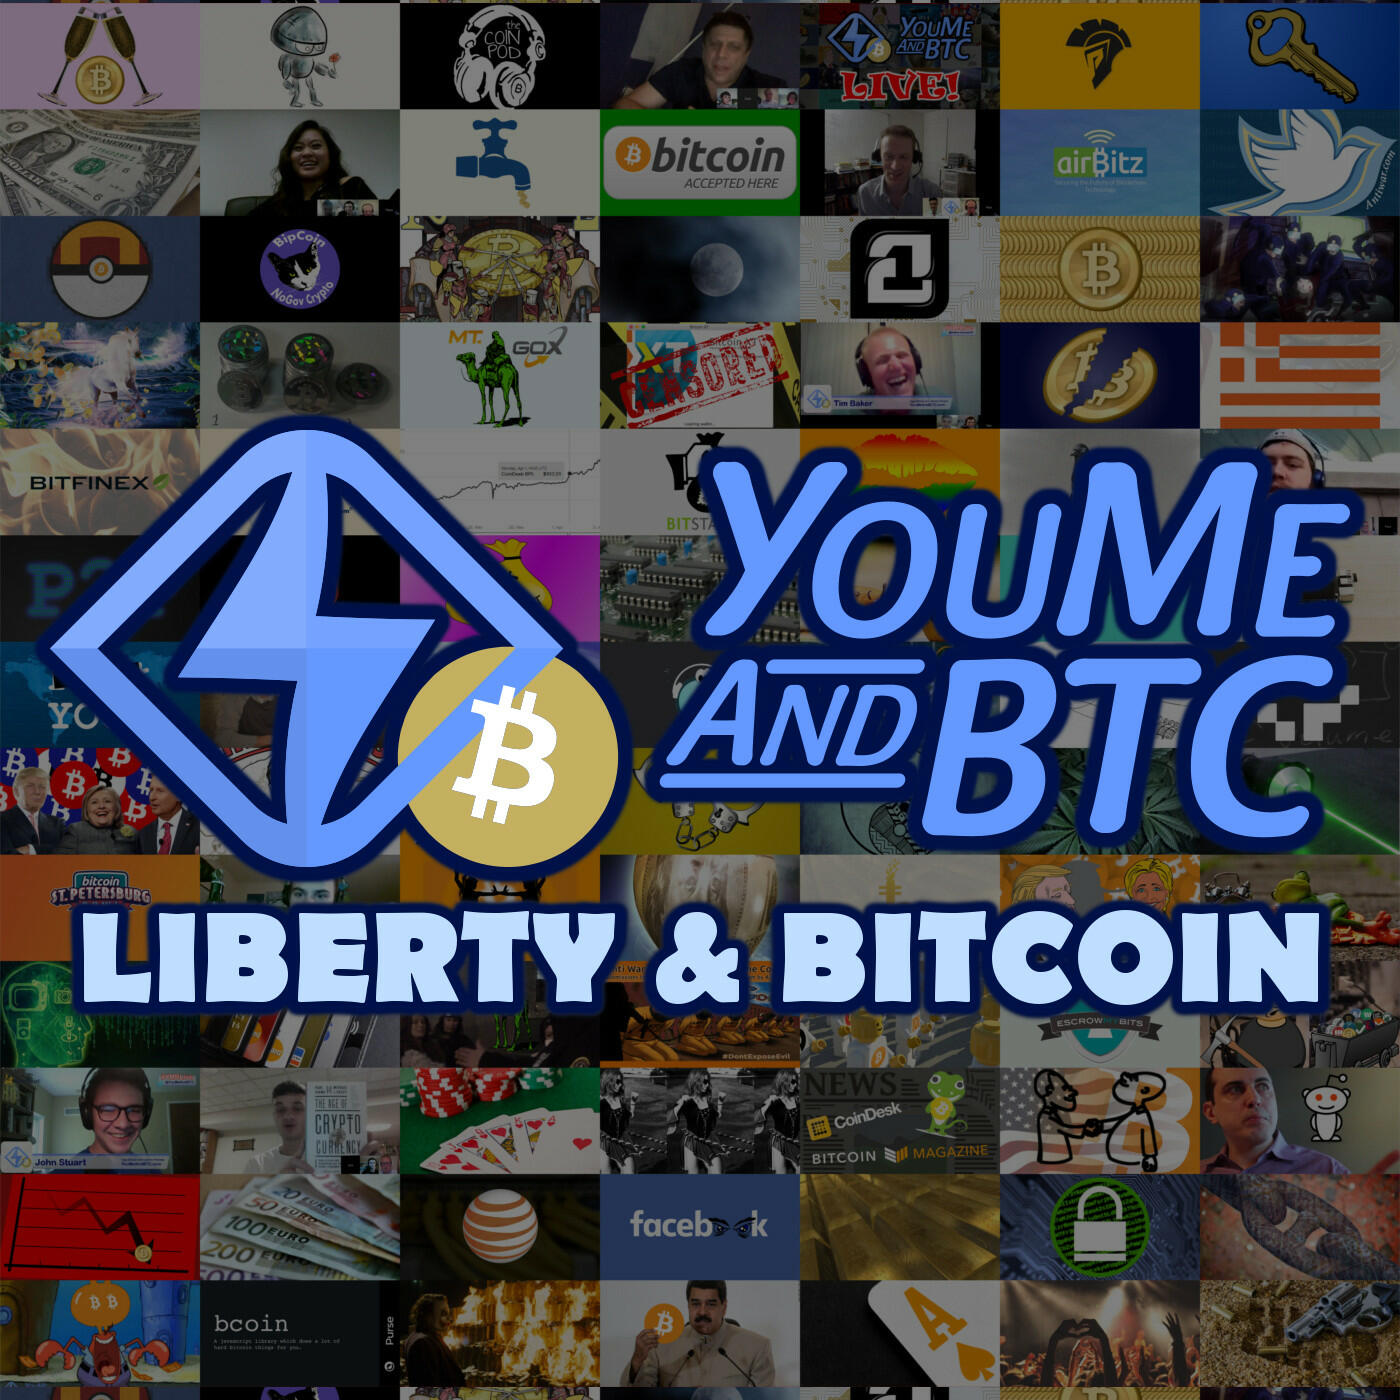 You, Me, and BTC: Liberty & Bitcoin